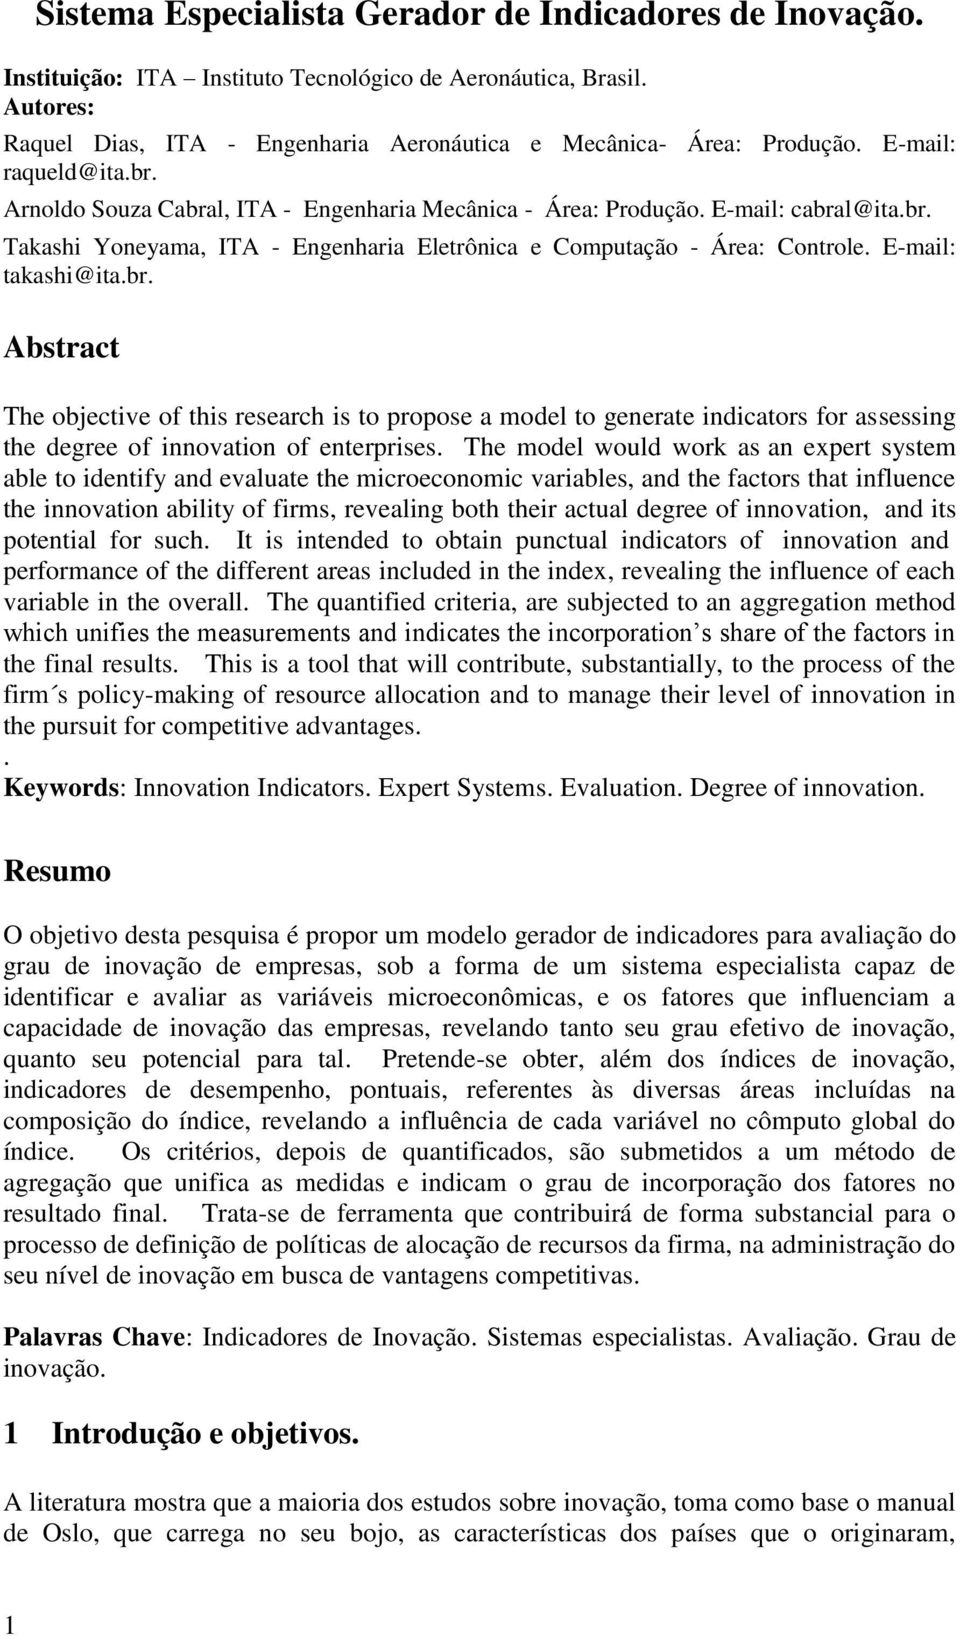 E-mail: takashi@ita.br. Abstract The objective of this research is to propose a model to generate indicators for assessing the degree of innovation of enterprises.